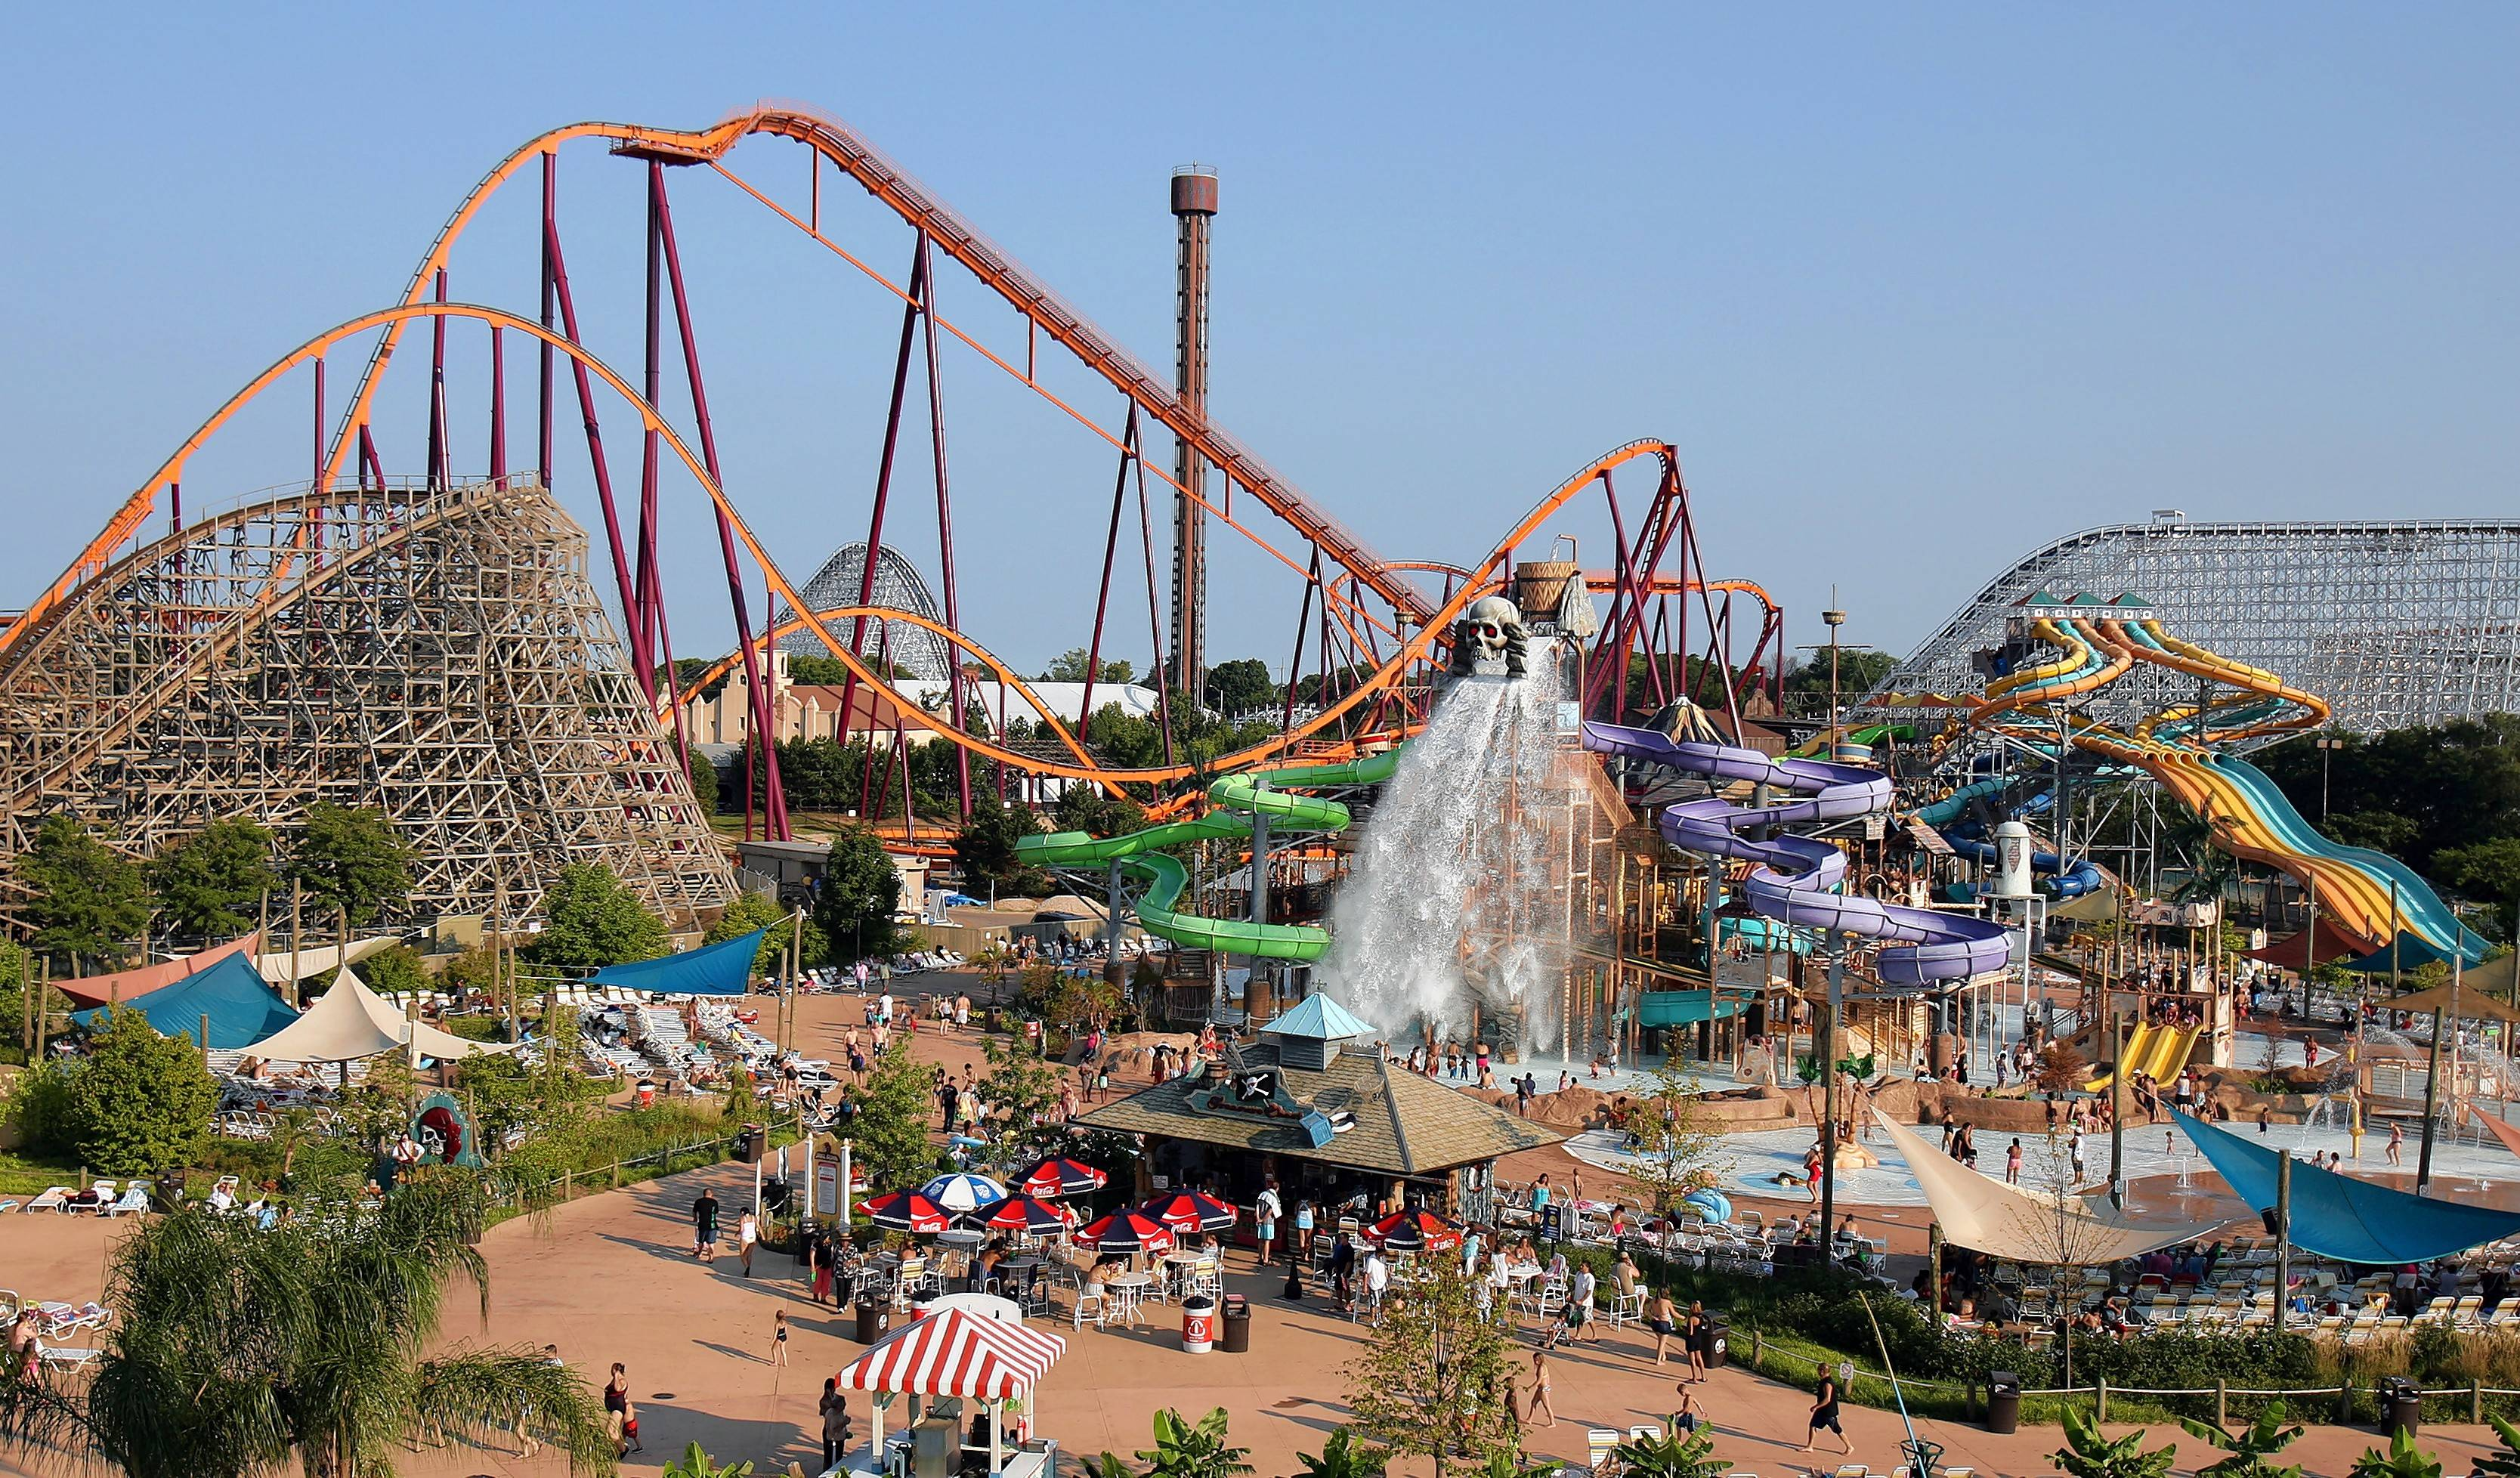 Hurricane Harbor at Six Flags Great America in Gurnee opens for the 2019 season starting Friday, May 25.